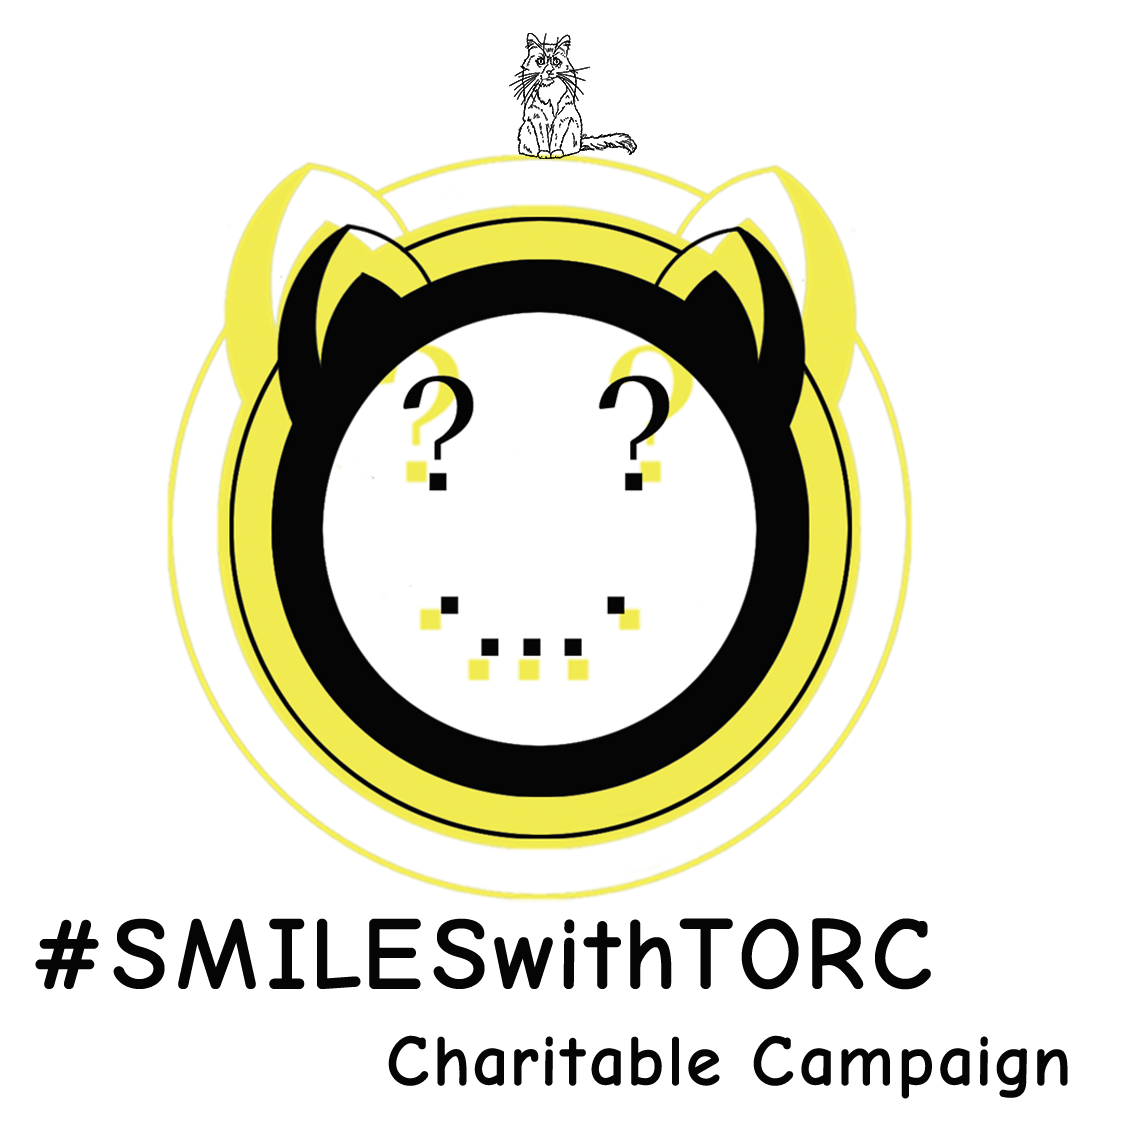 - The #SMILESwithTORC Charitable Campaign focuses on bringing the joy of reading and discovery to children from all walks of life.